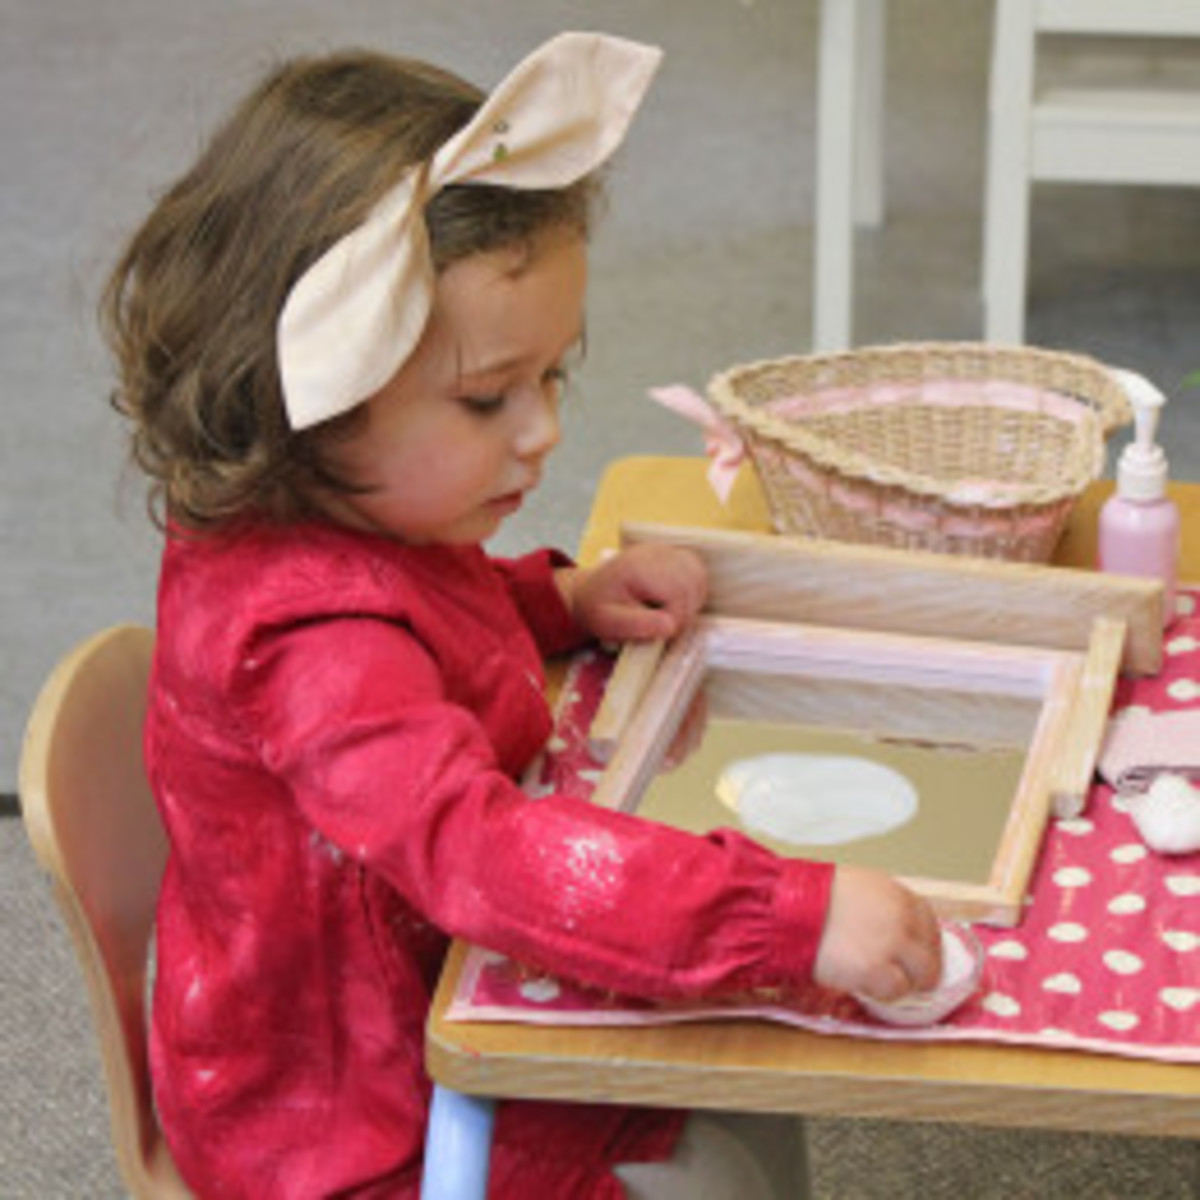 Young child working independently and individually.